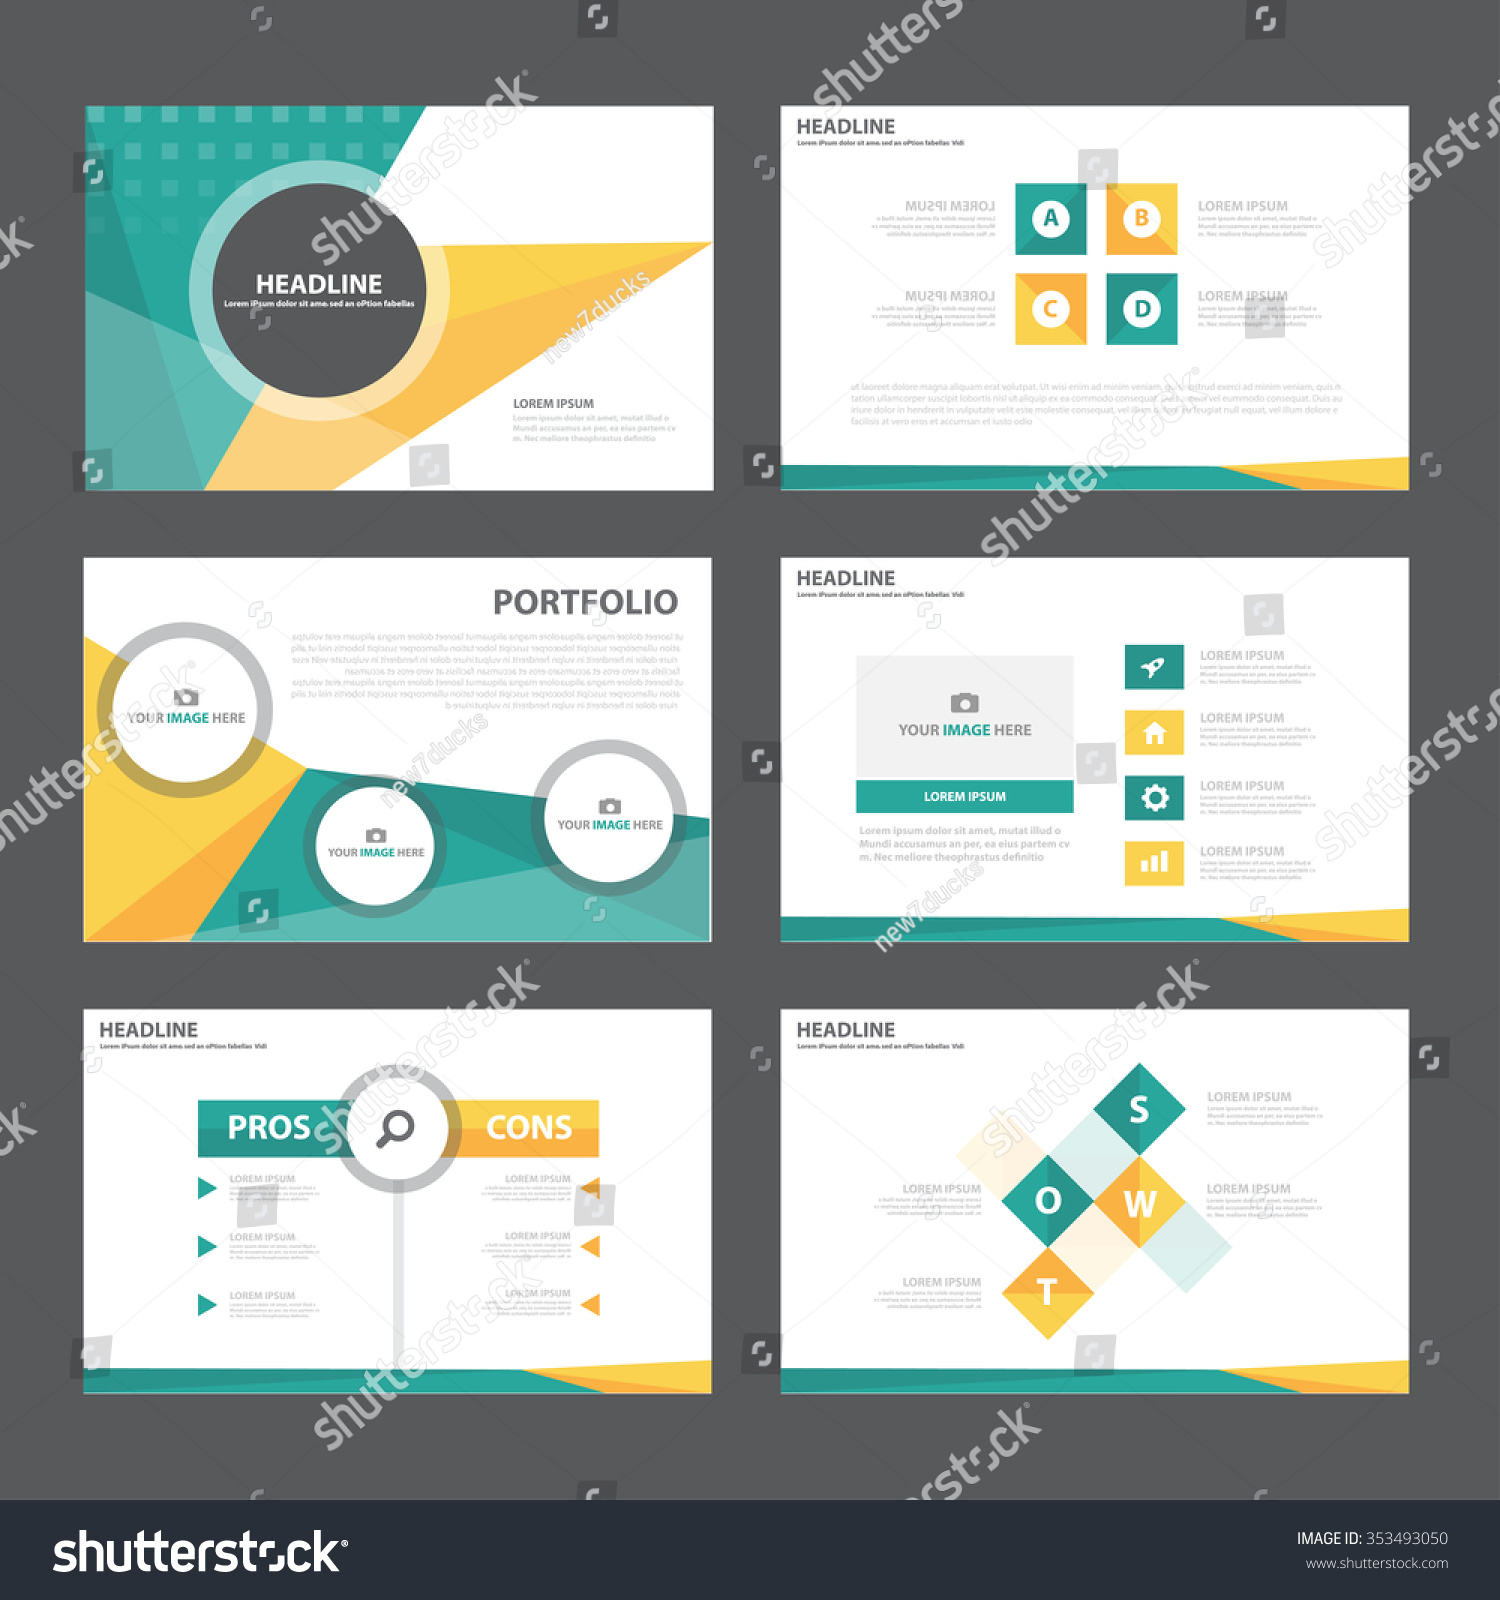 Green Orange Presentation Template Infographic Elements